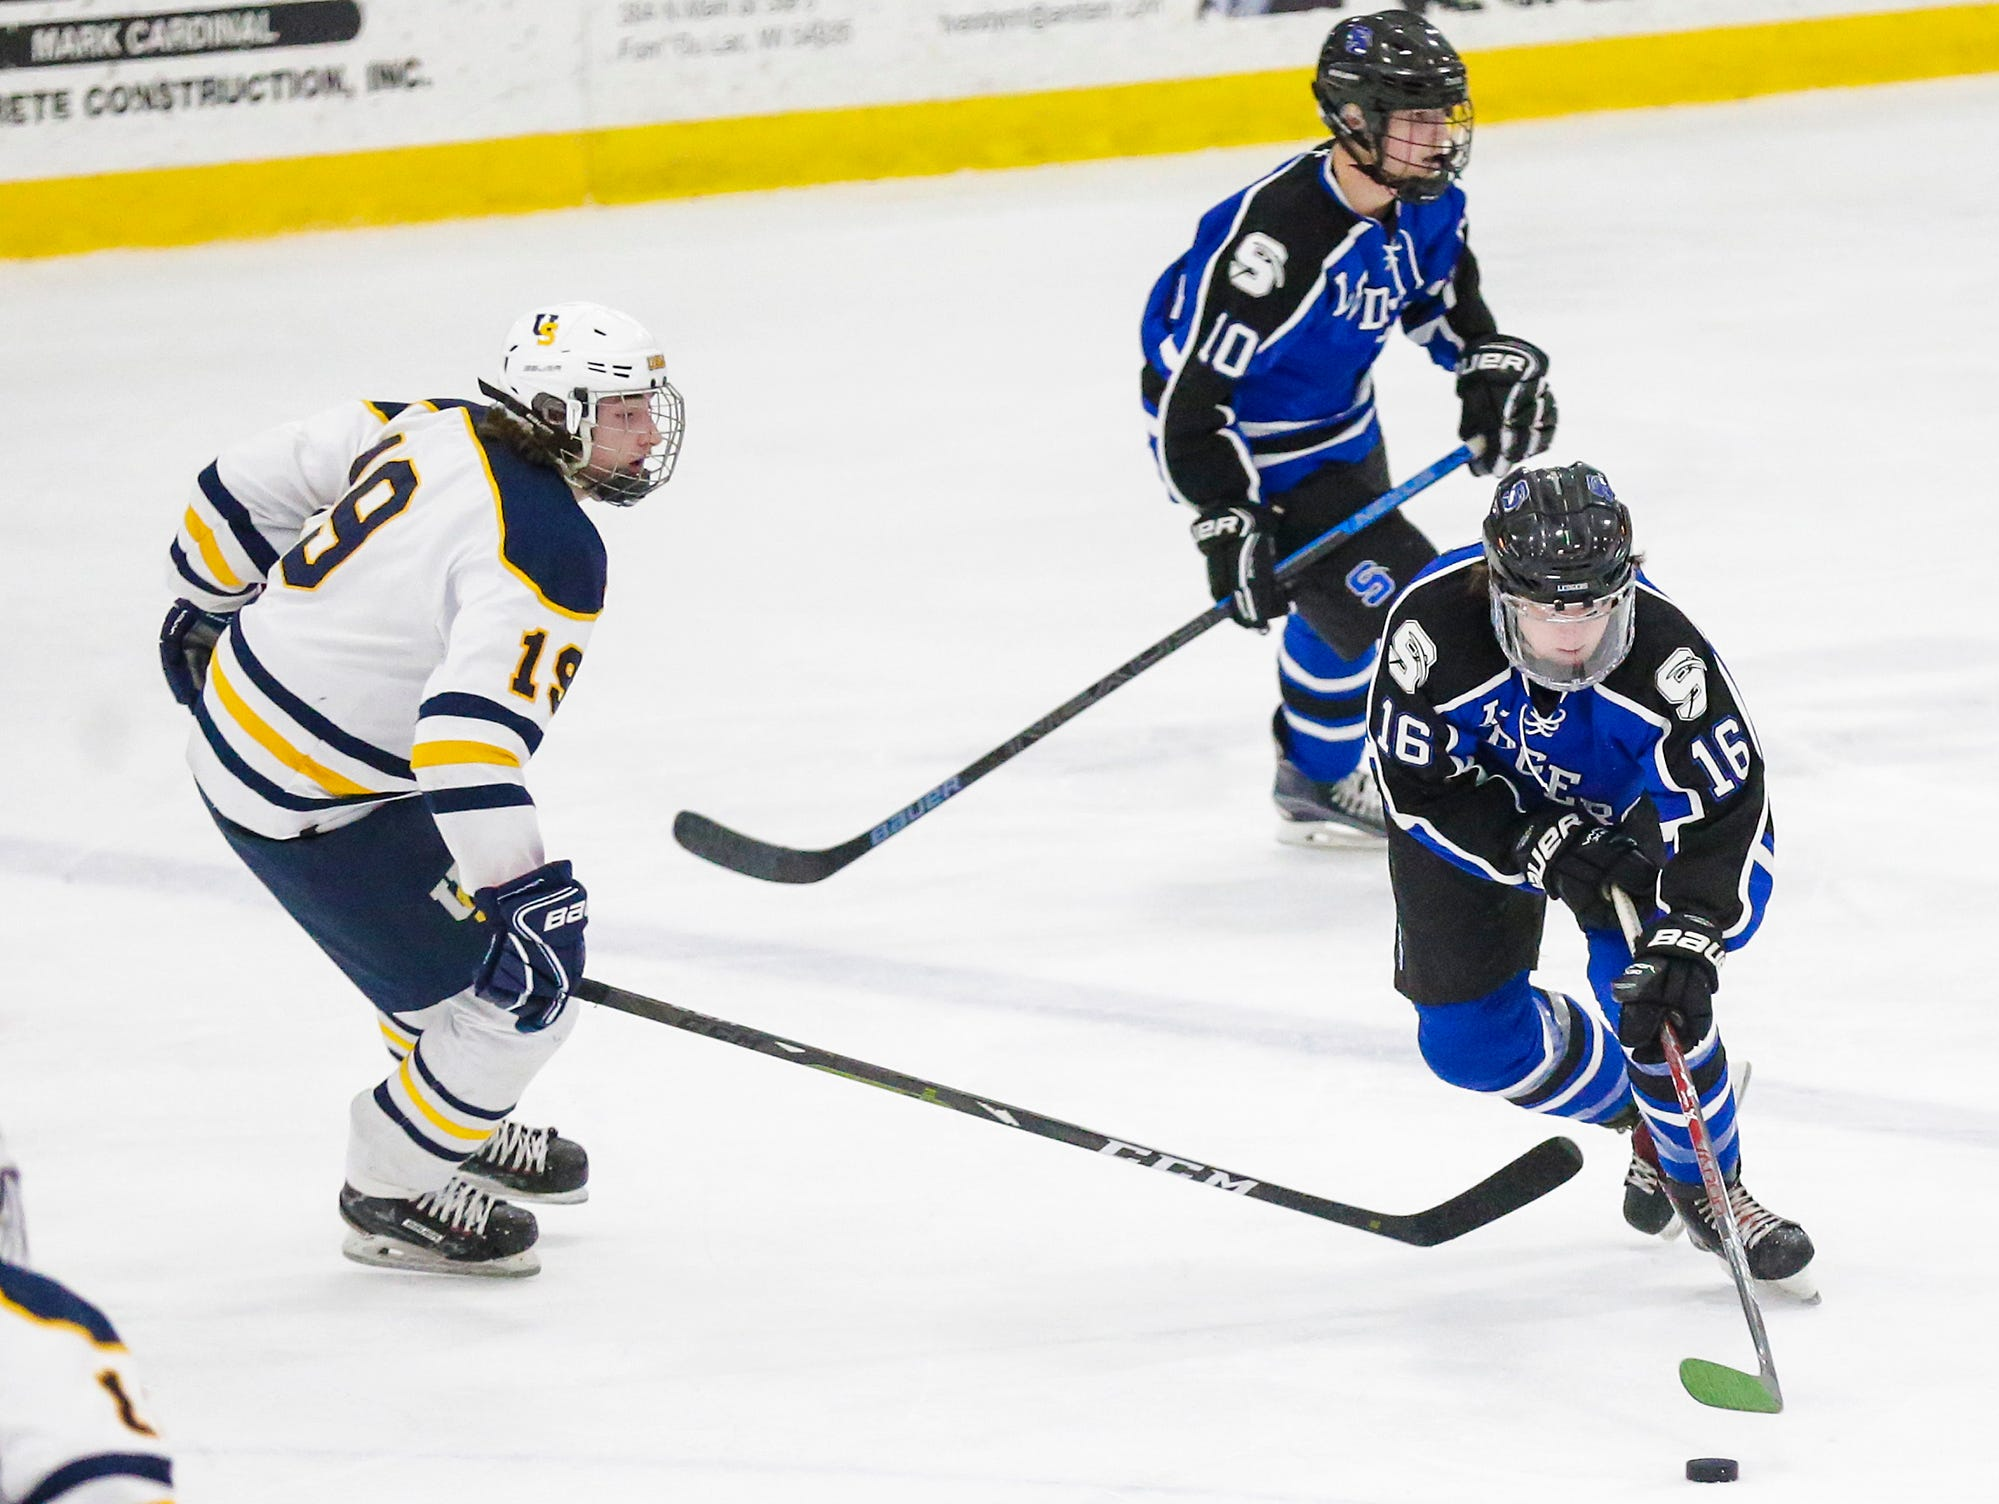 St. Mary's Springs boys co-op hockey's Caleb Schaefer (16) moves the puck around University School of Milwaukee's Carson Mogush (19) Friday, February 22, 2019 during their WIAA sectional final game in Fond du Lac. University School won the game 6-1 and will advance to state. Doug Raflik/USA TODAY NETWORK-Wisconsin